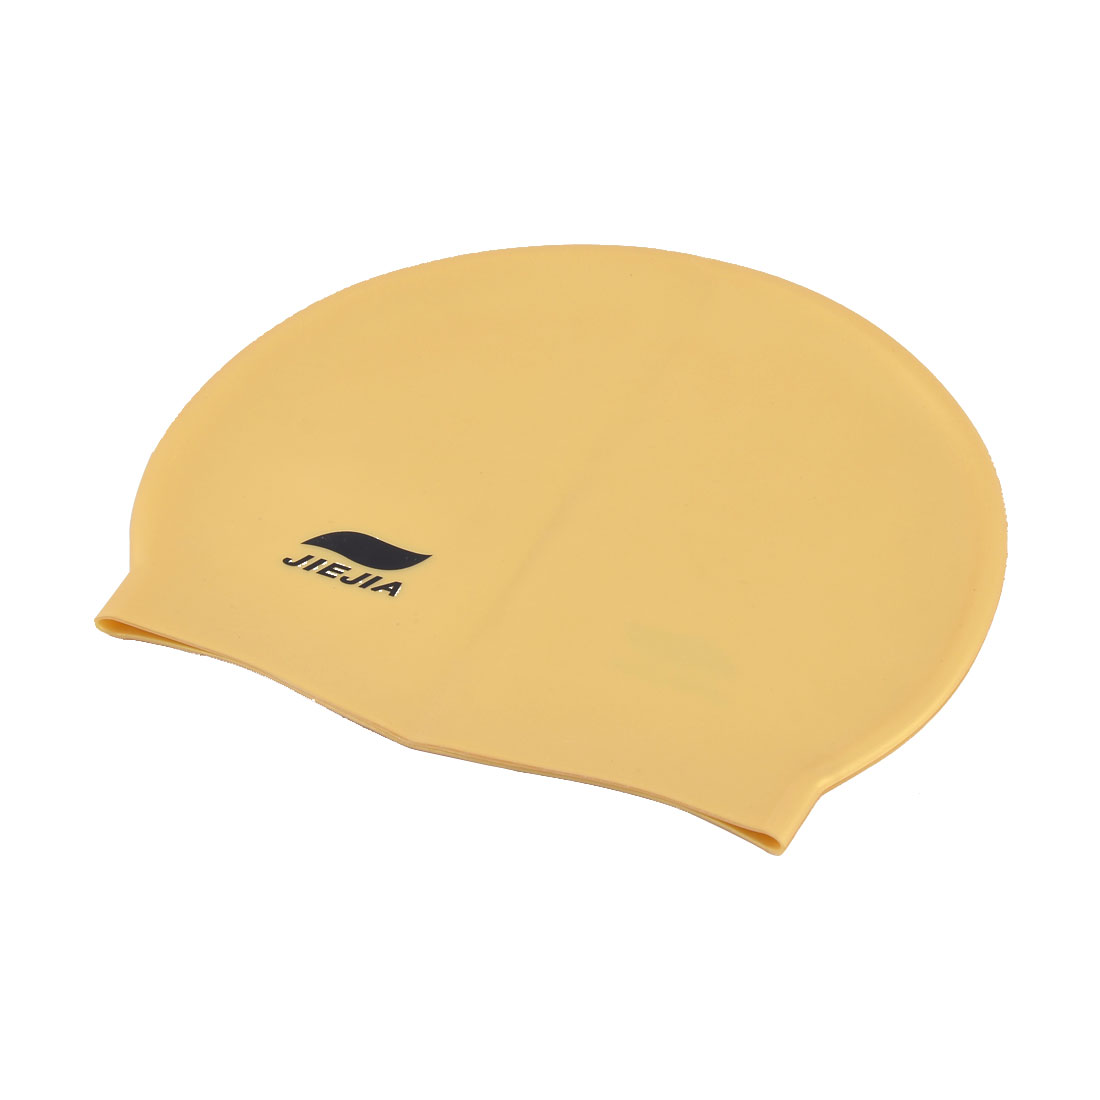 Adults Nonslip Silicone Elastic Swimming Surfing Diving Hat Cap Gold Tone Black